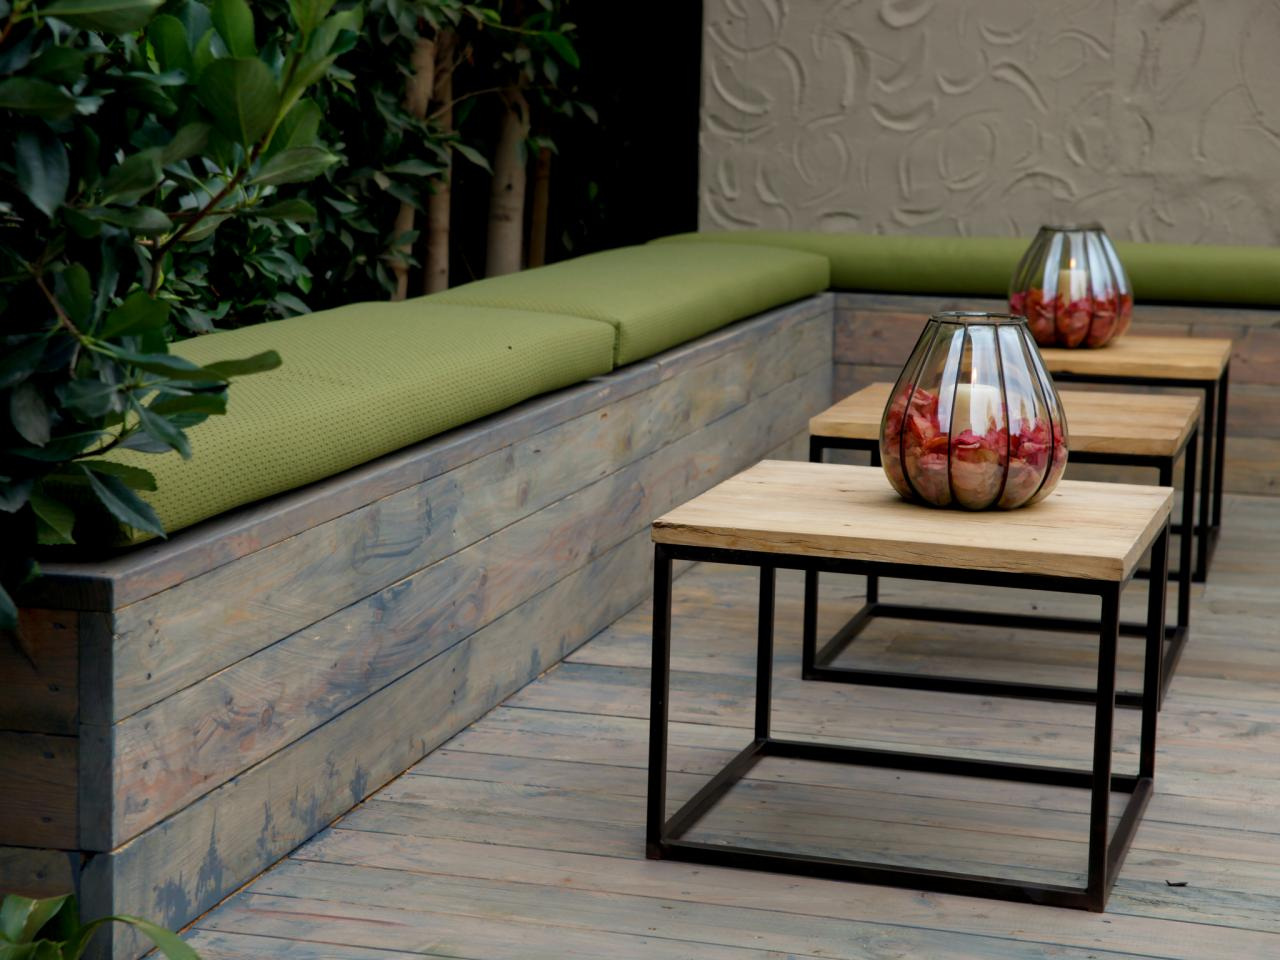 Green outdoor bench seat cushions